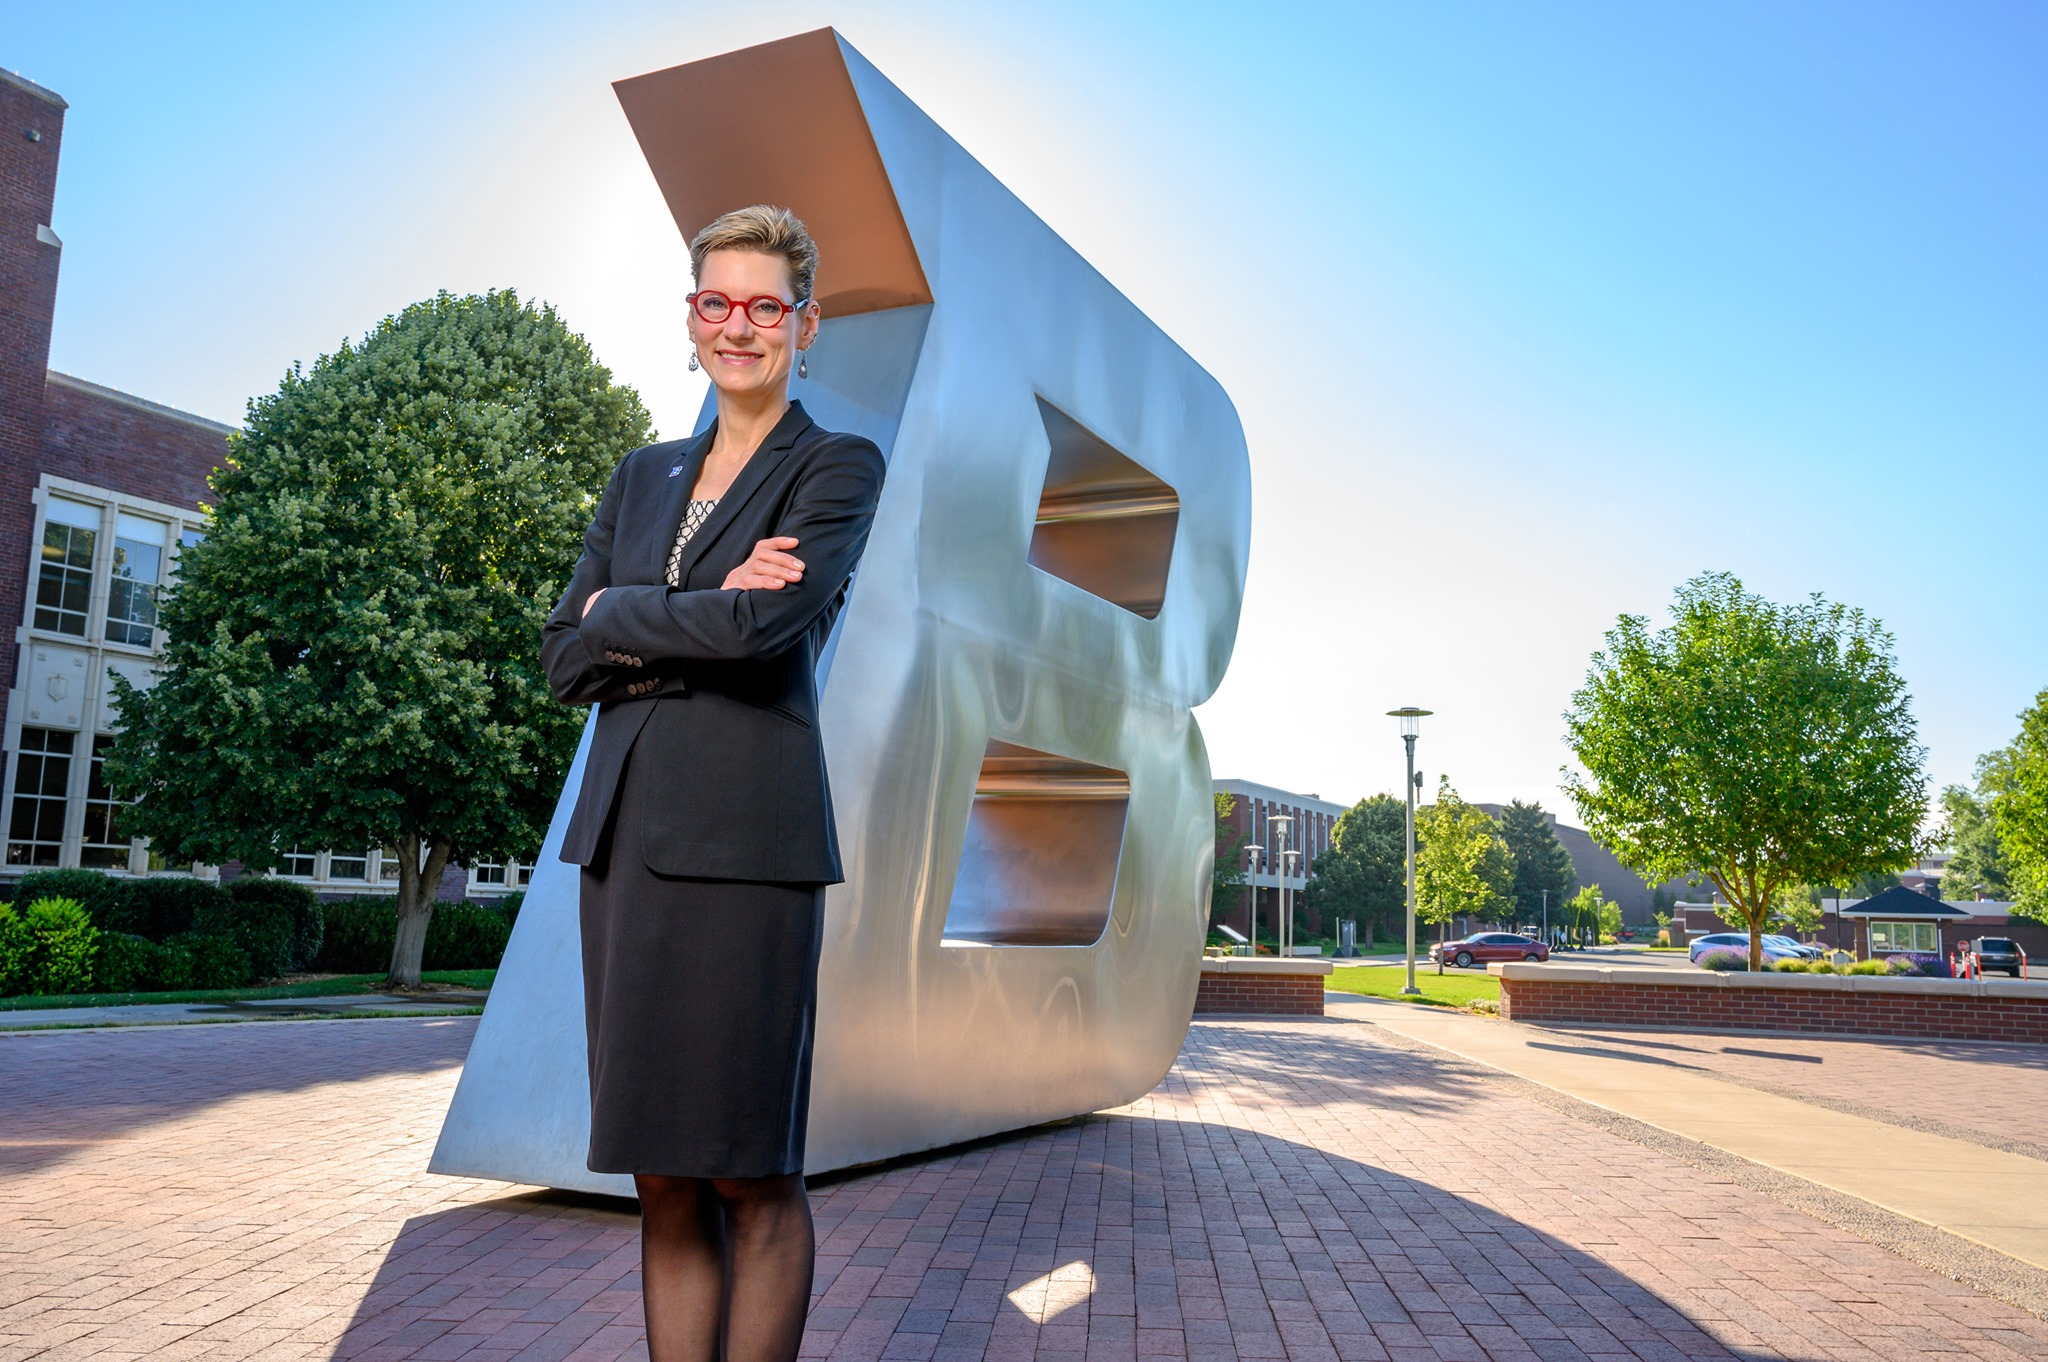 Dr. Tromp in front of the Boise State B sculpture